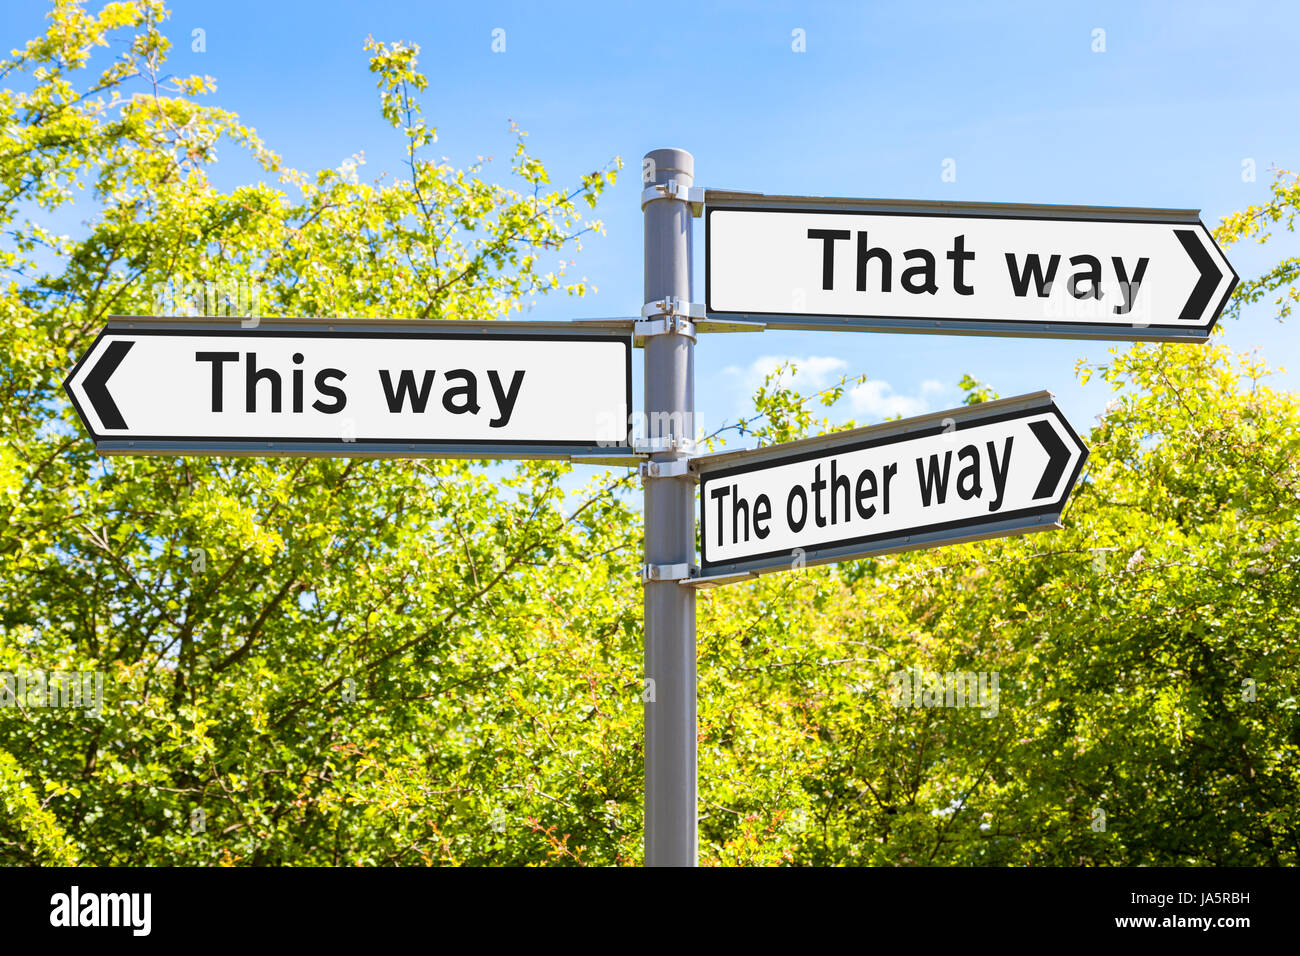 Making Choices High Resolution Stock Photography and Images - Alamy